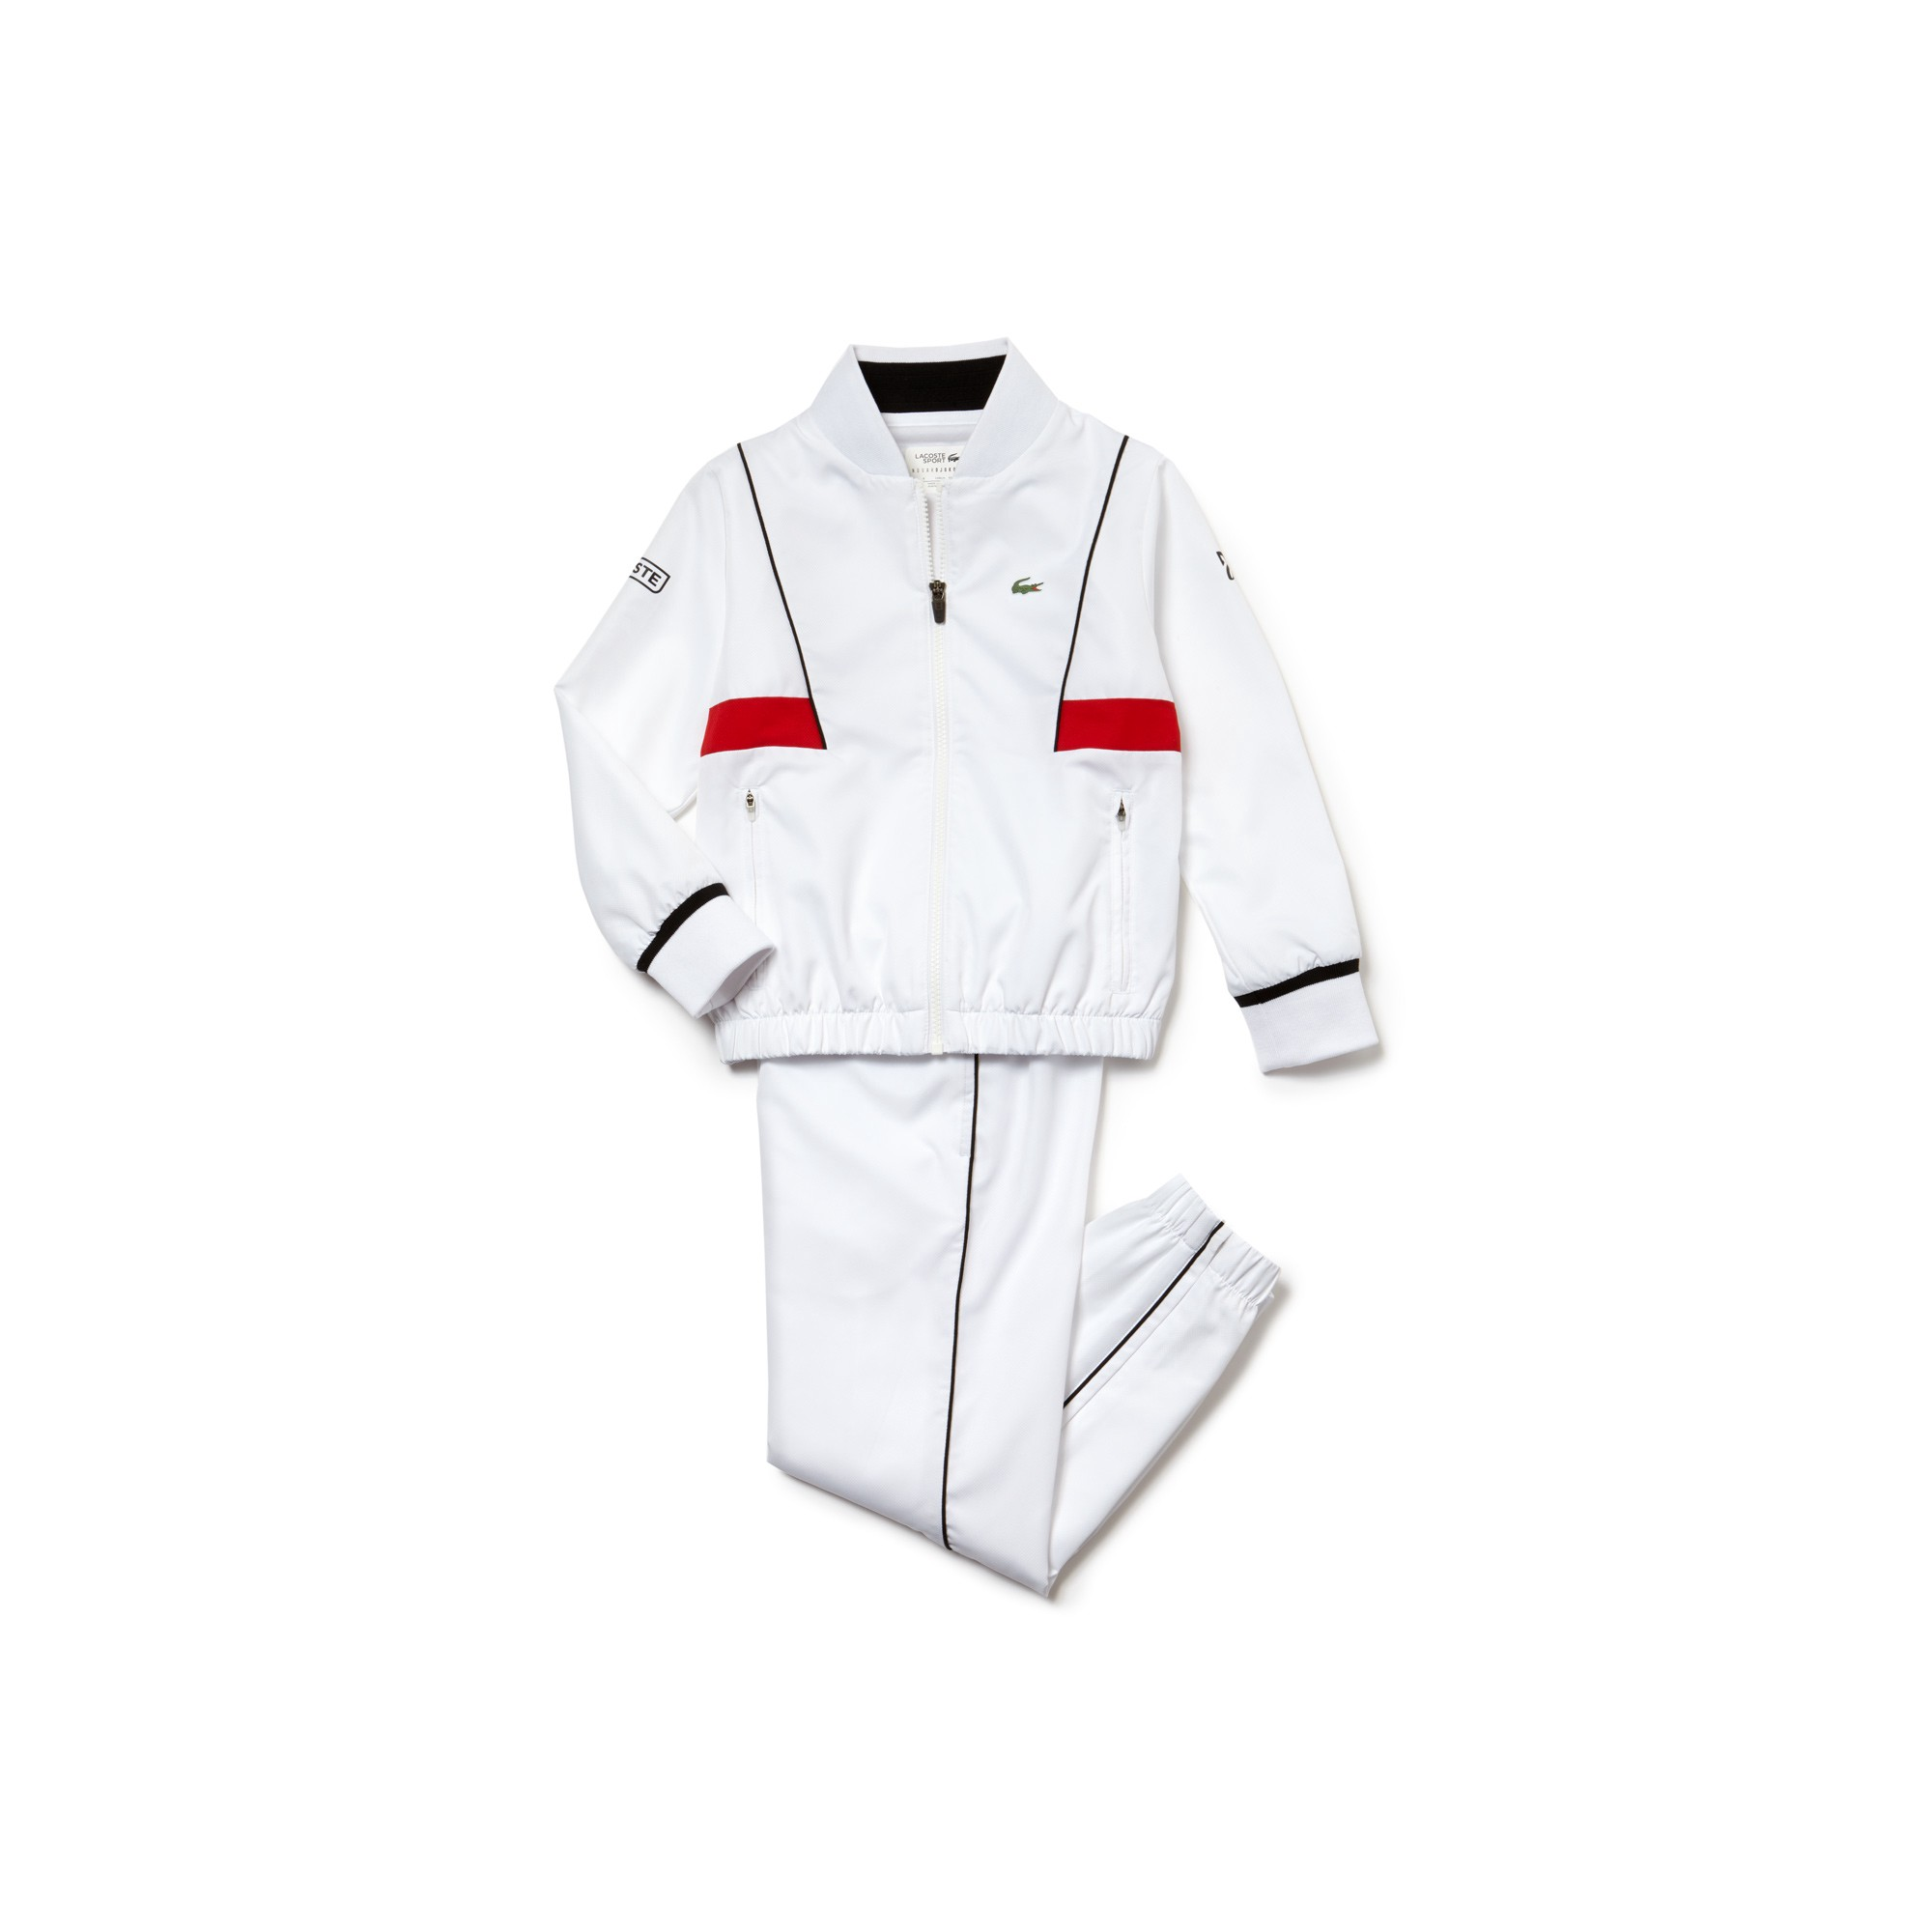 ed96a0656ef295 Lacoste Boys  Sport Tracksuit - Novak Djokovic Collection White Black-Red 6  Years